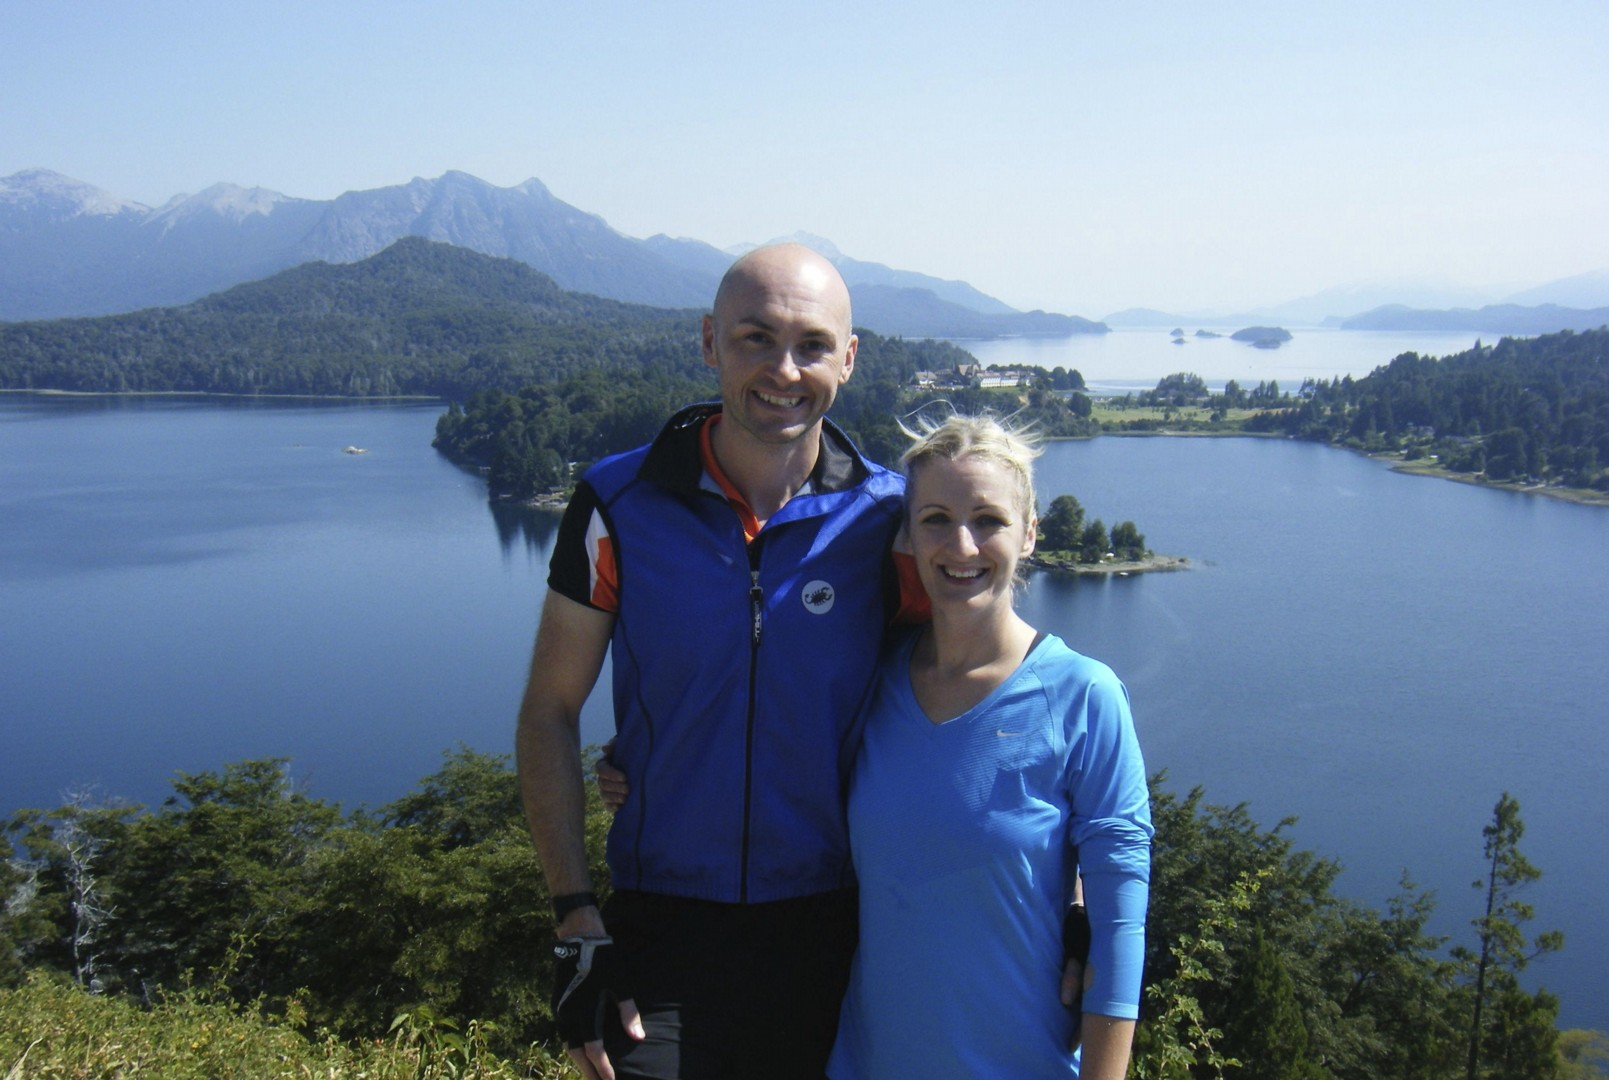 chile-cycling-holiday-adventure.jpg - Chile and Argentina - Lake District - Cycling Adventures